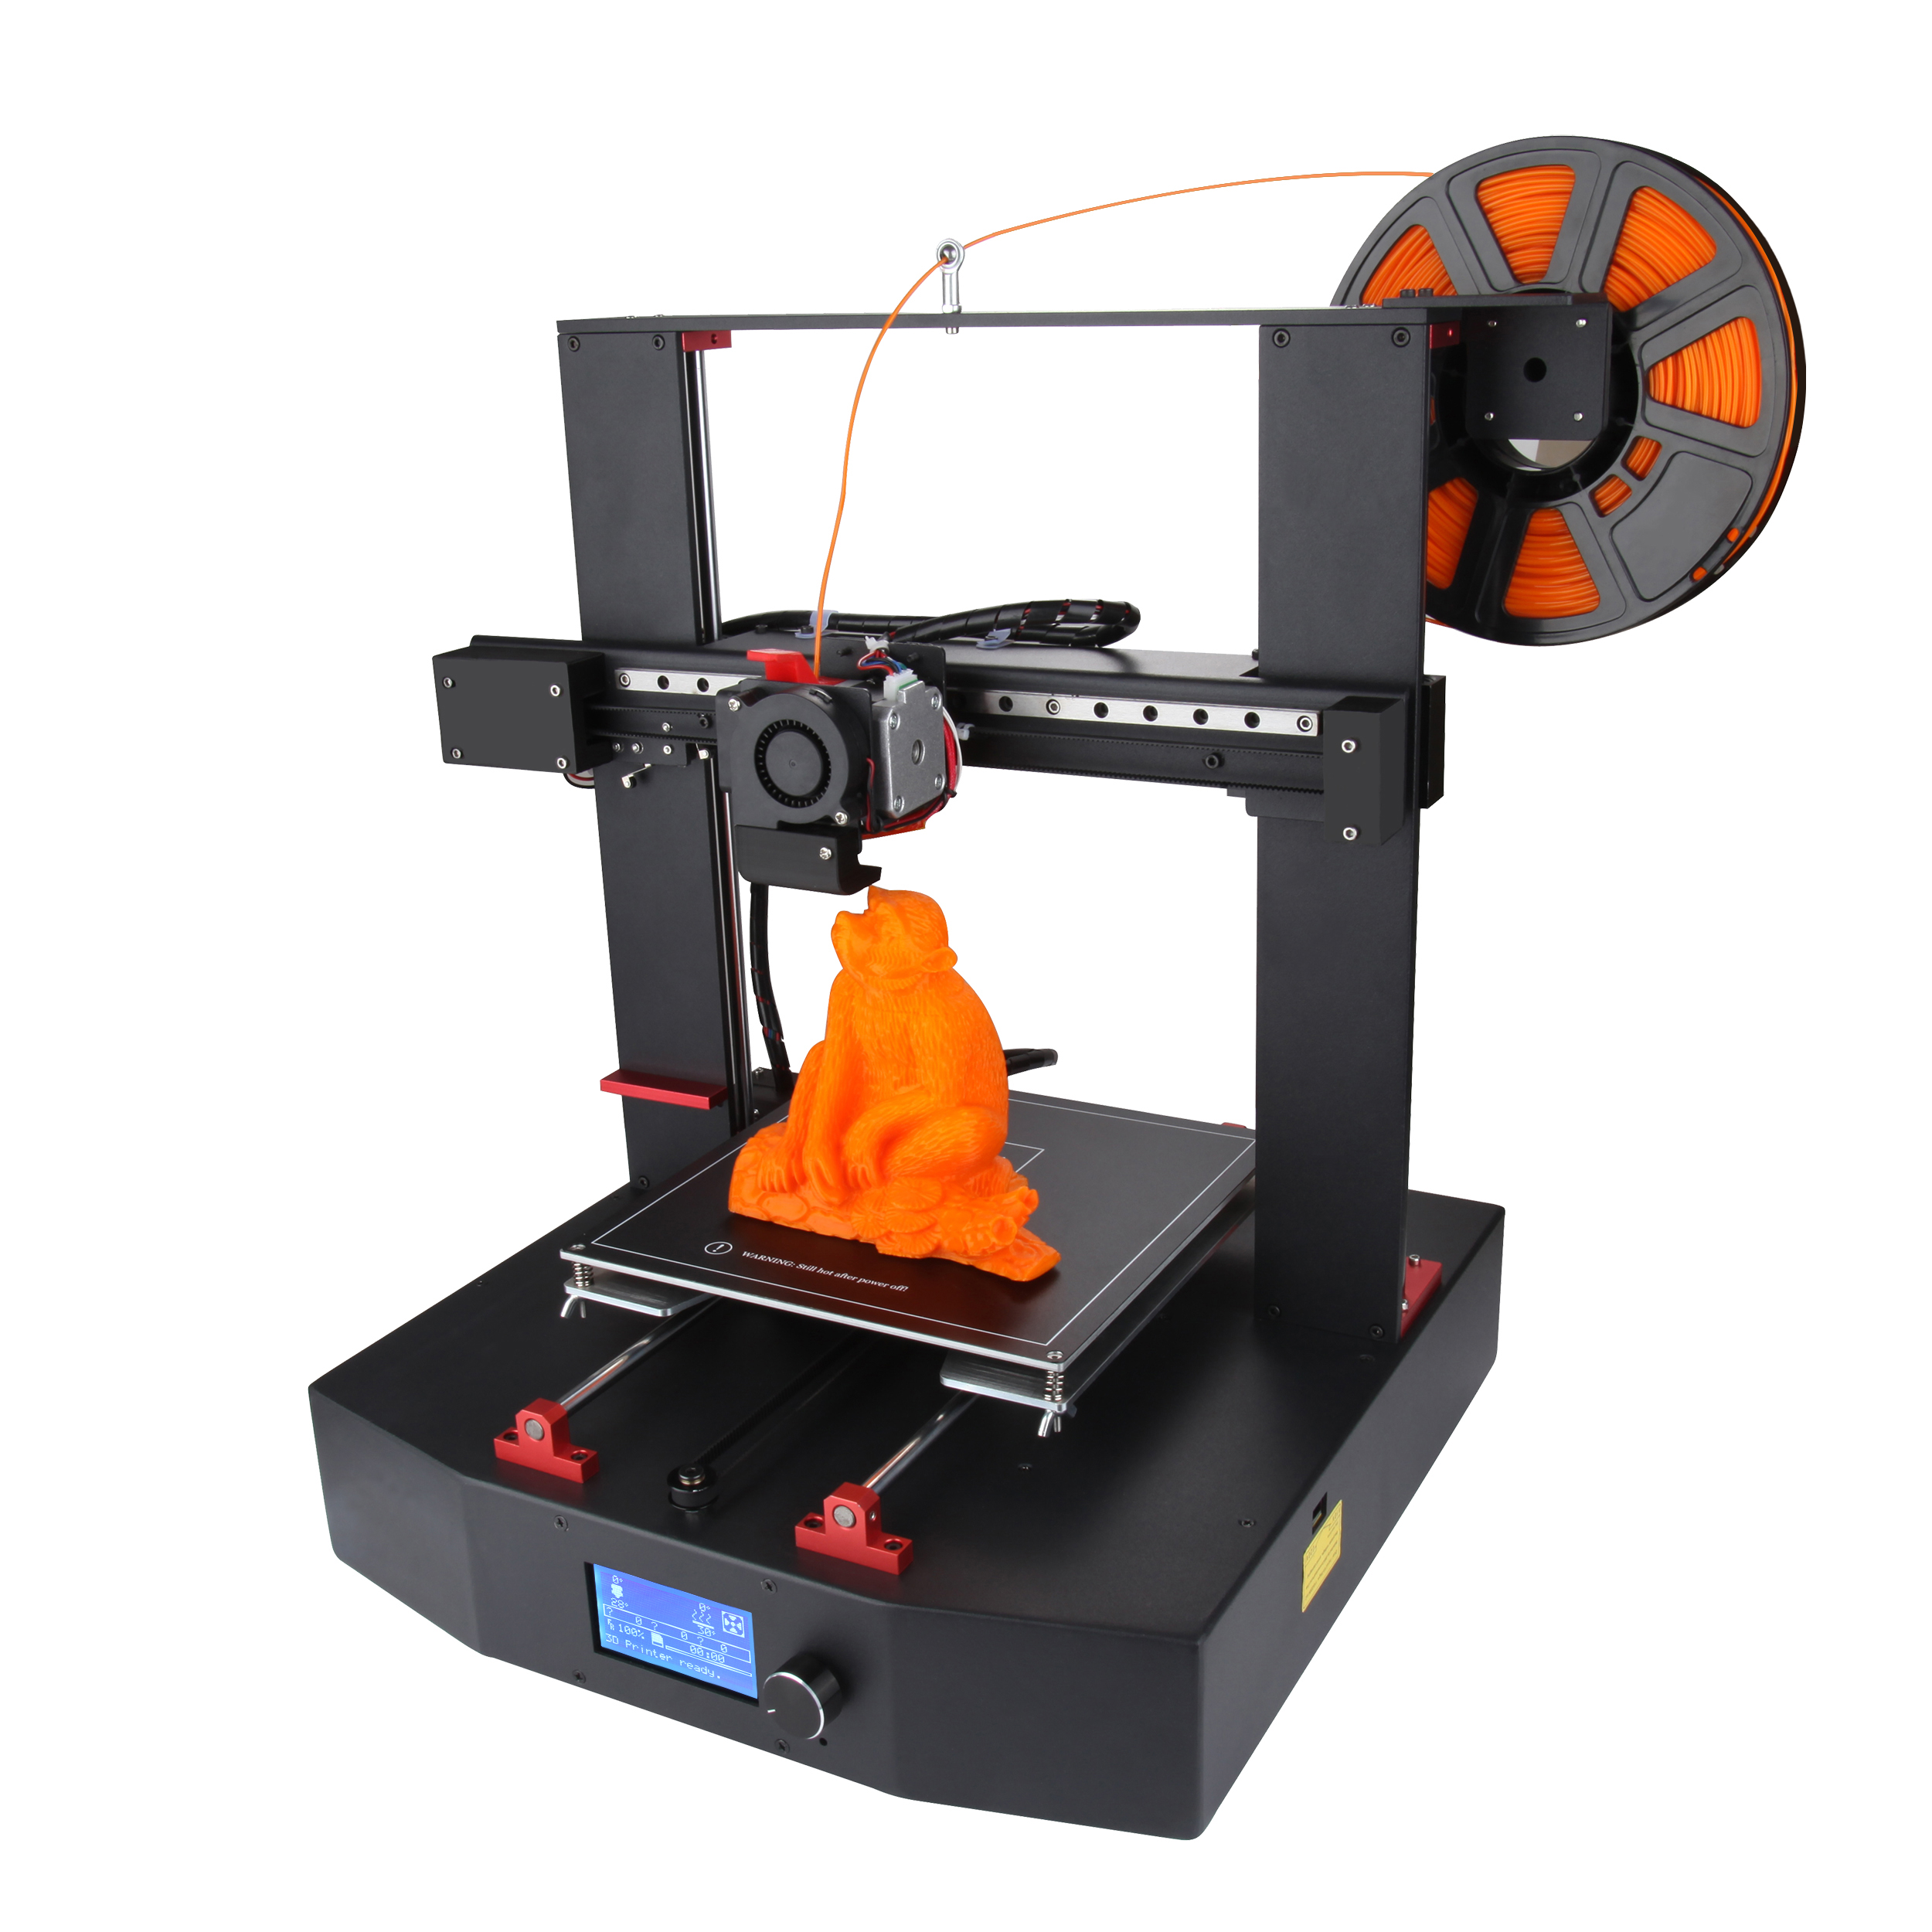 3d printer for sale - iOffer